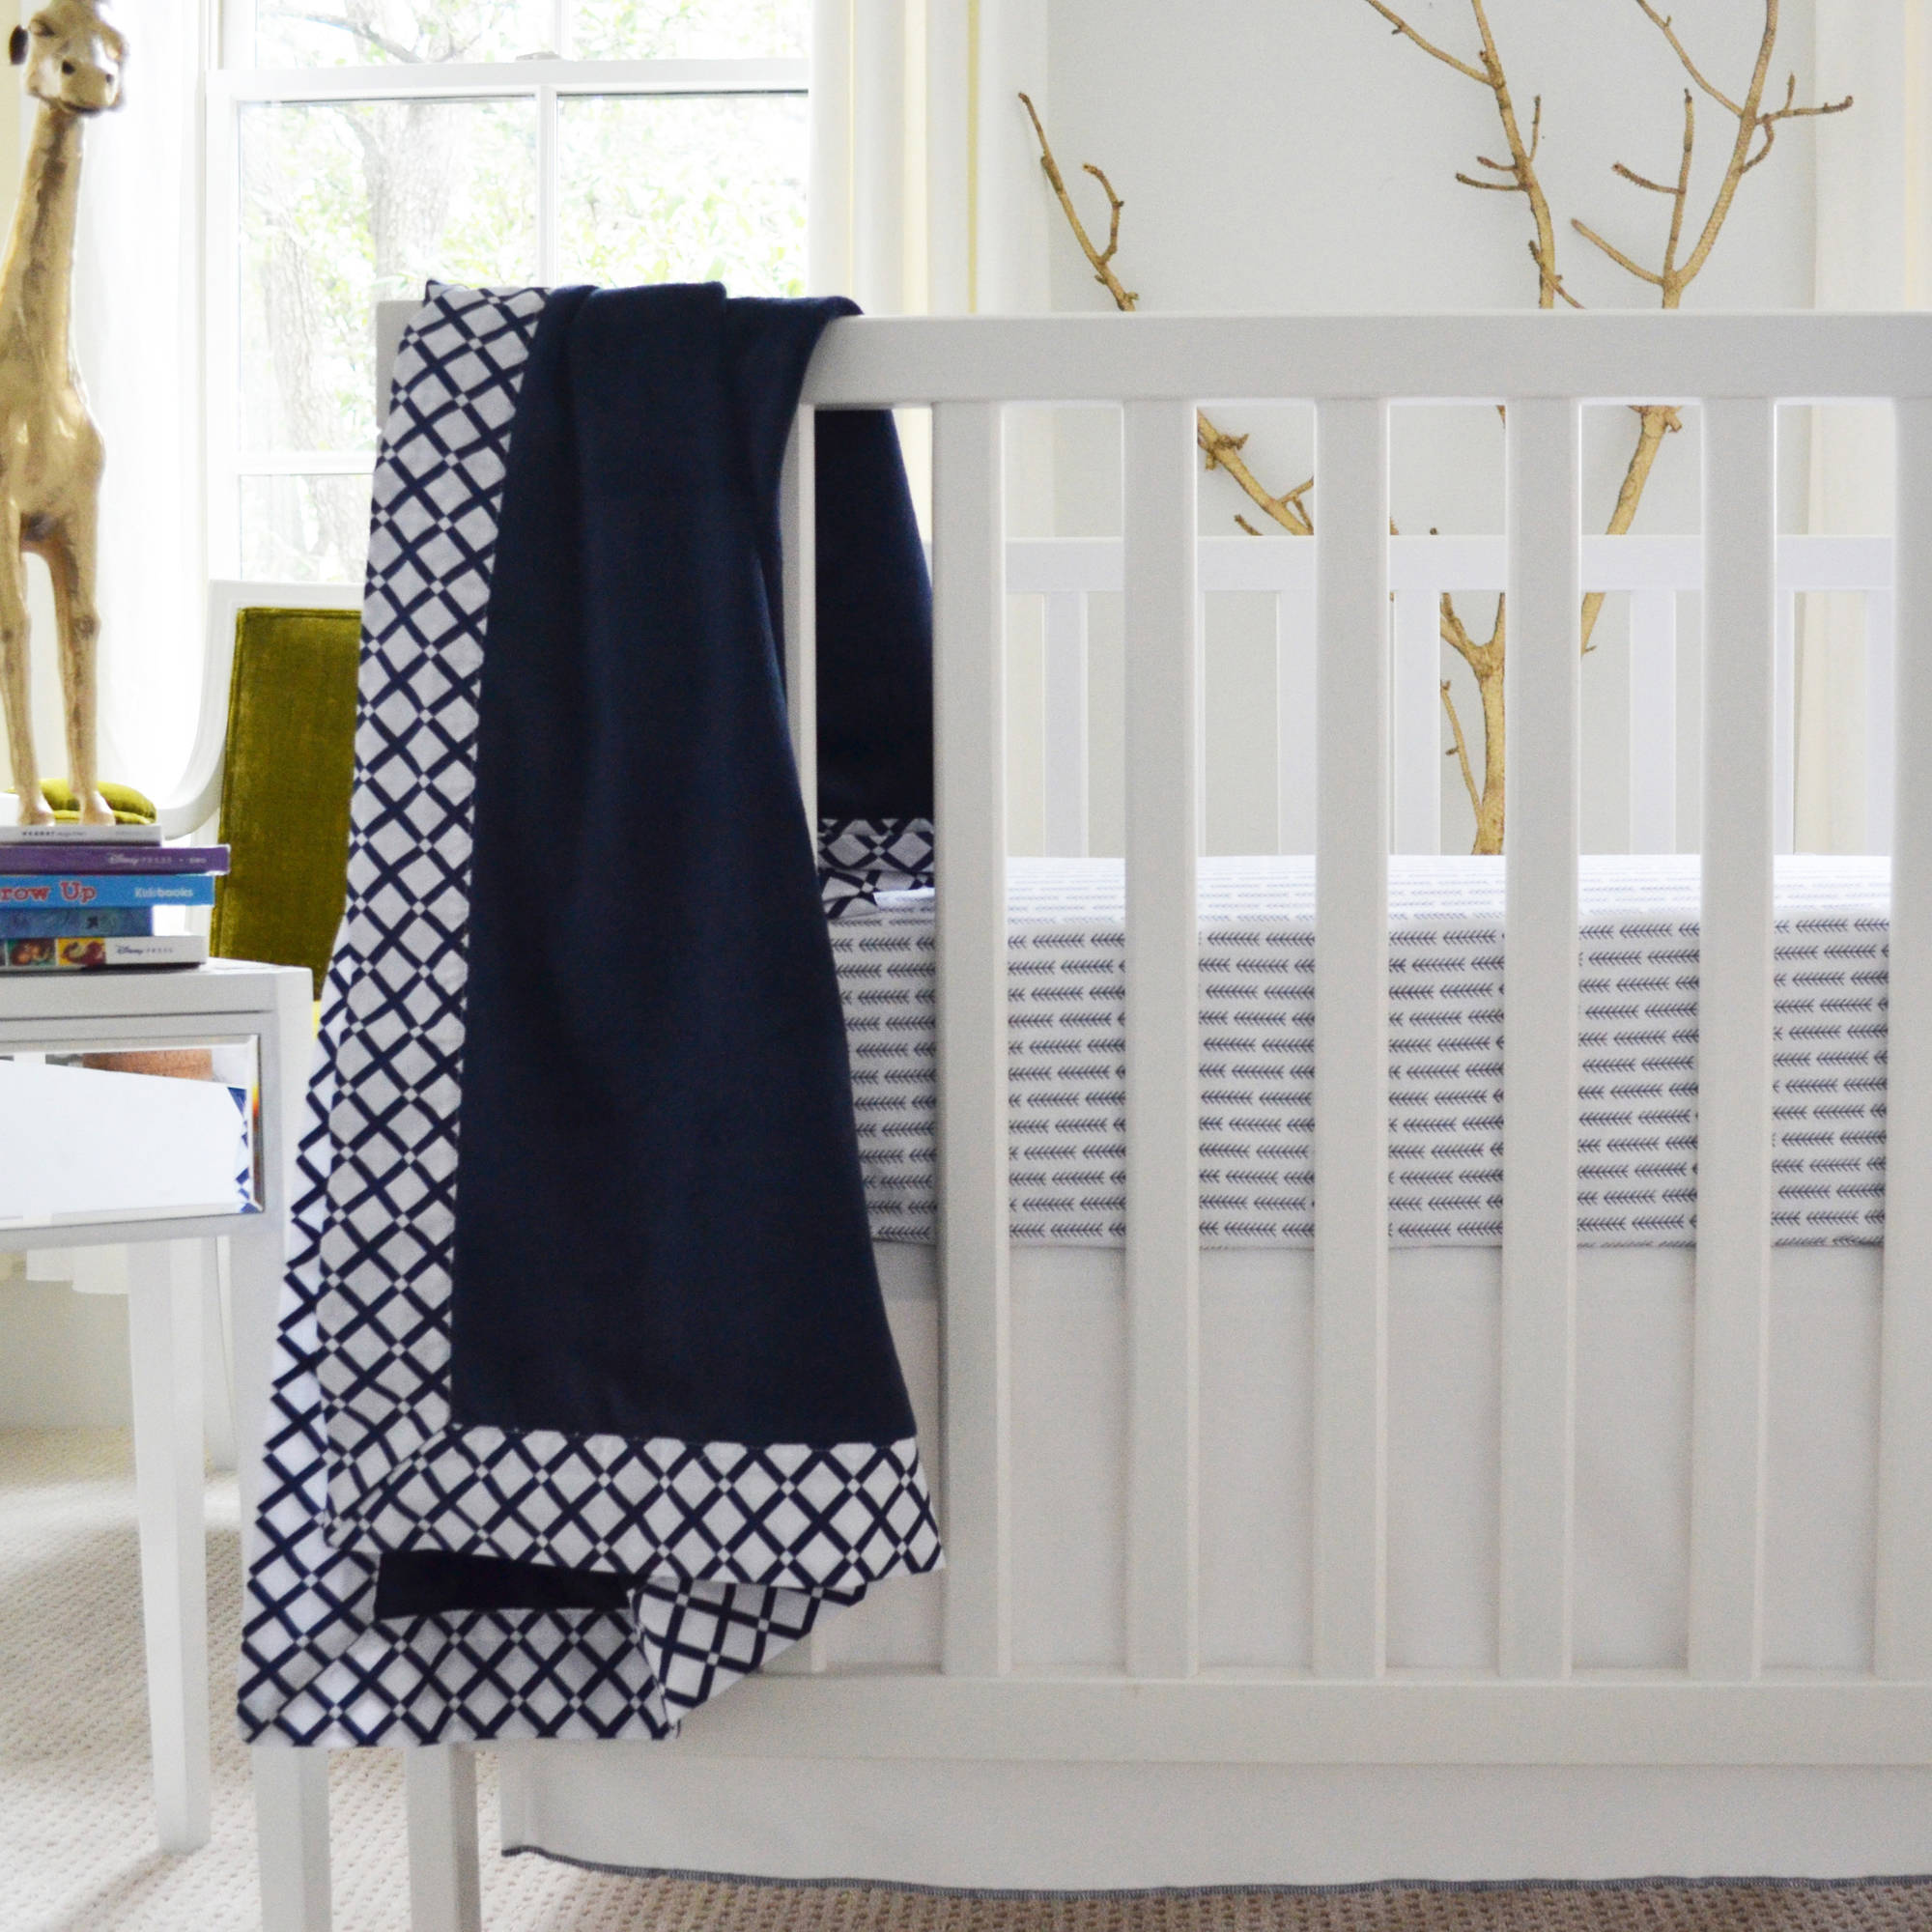 Owen & Ozzie 2-Piece Crib Bedding Set, Navy